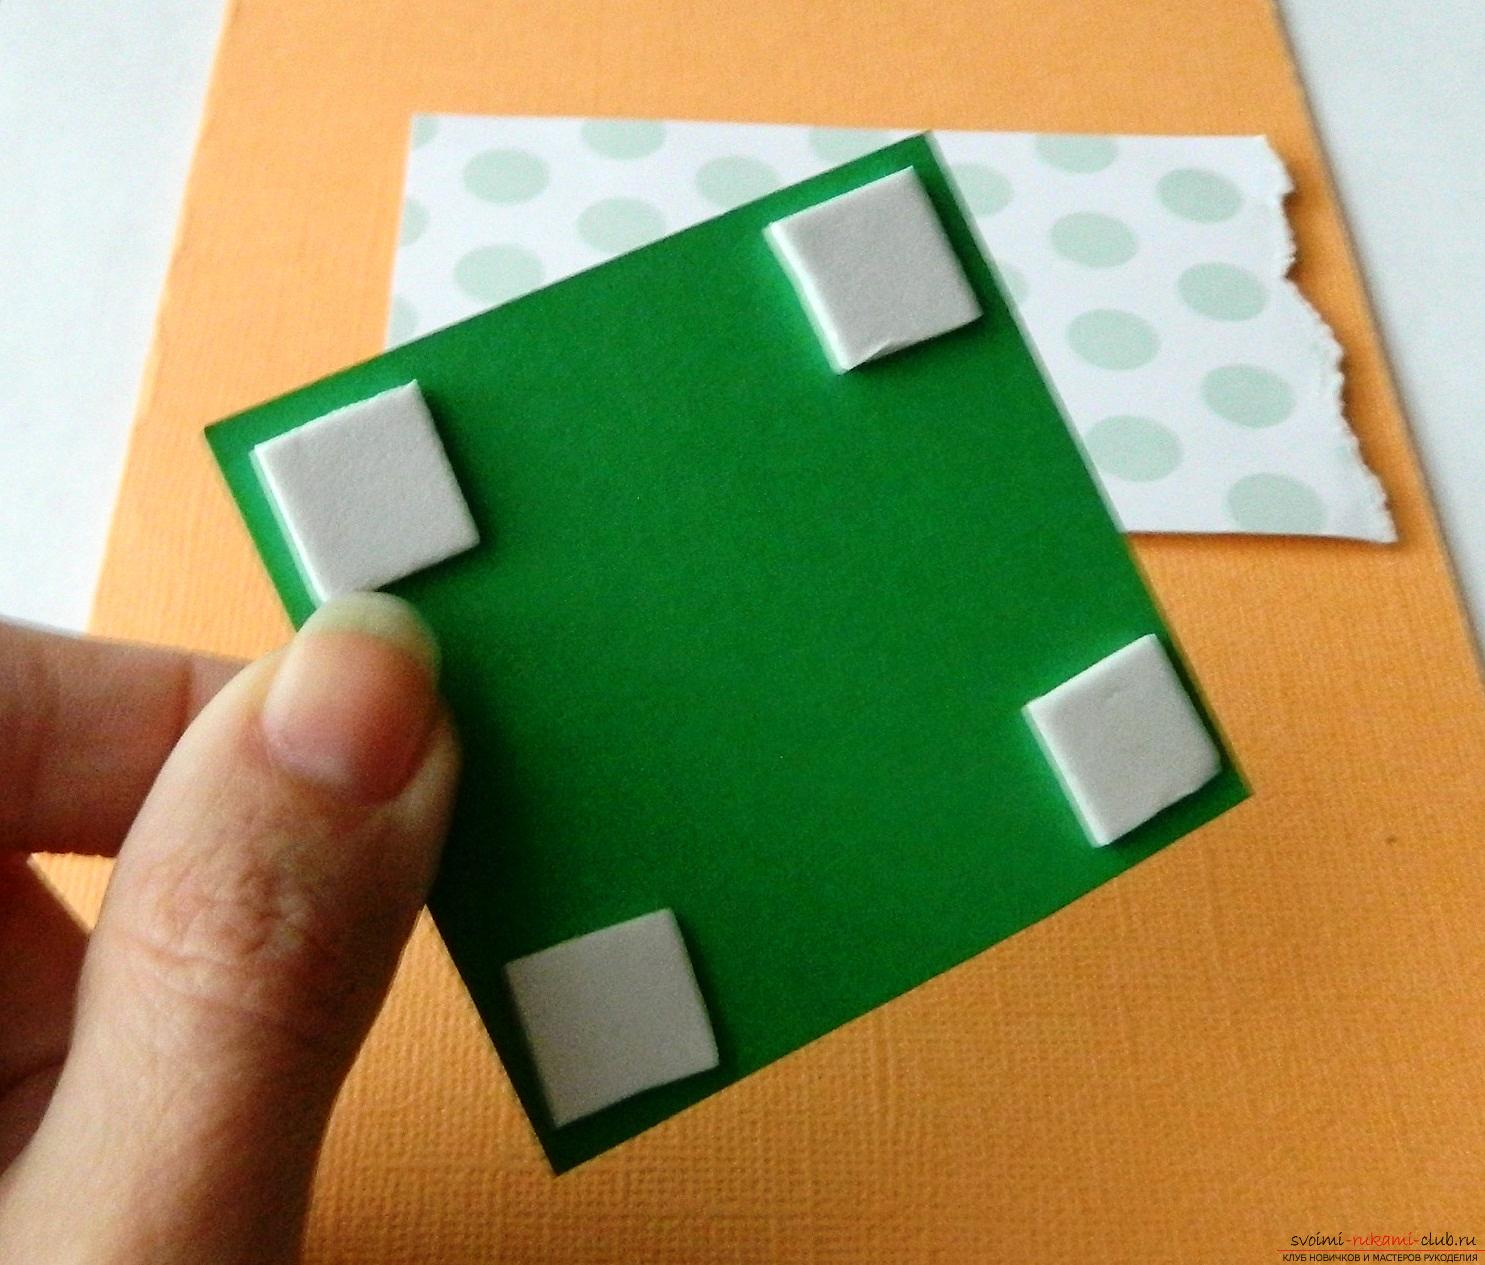 This master class will tell you how to make a card with your own hands for the celebration .. Photo # 5